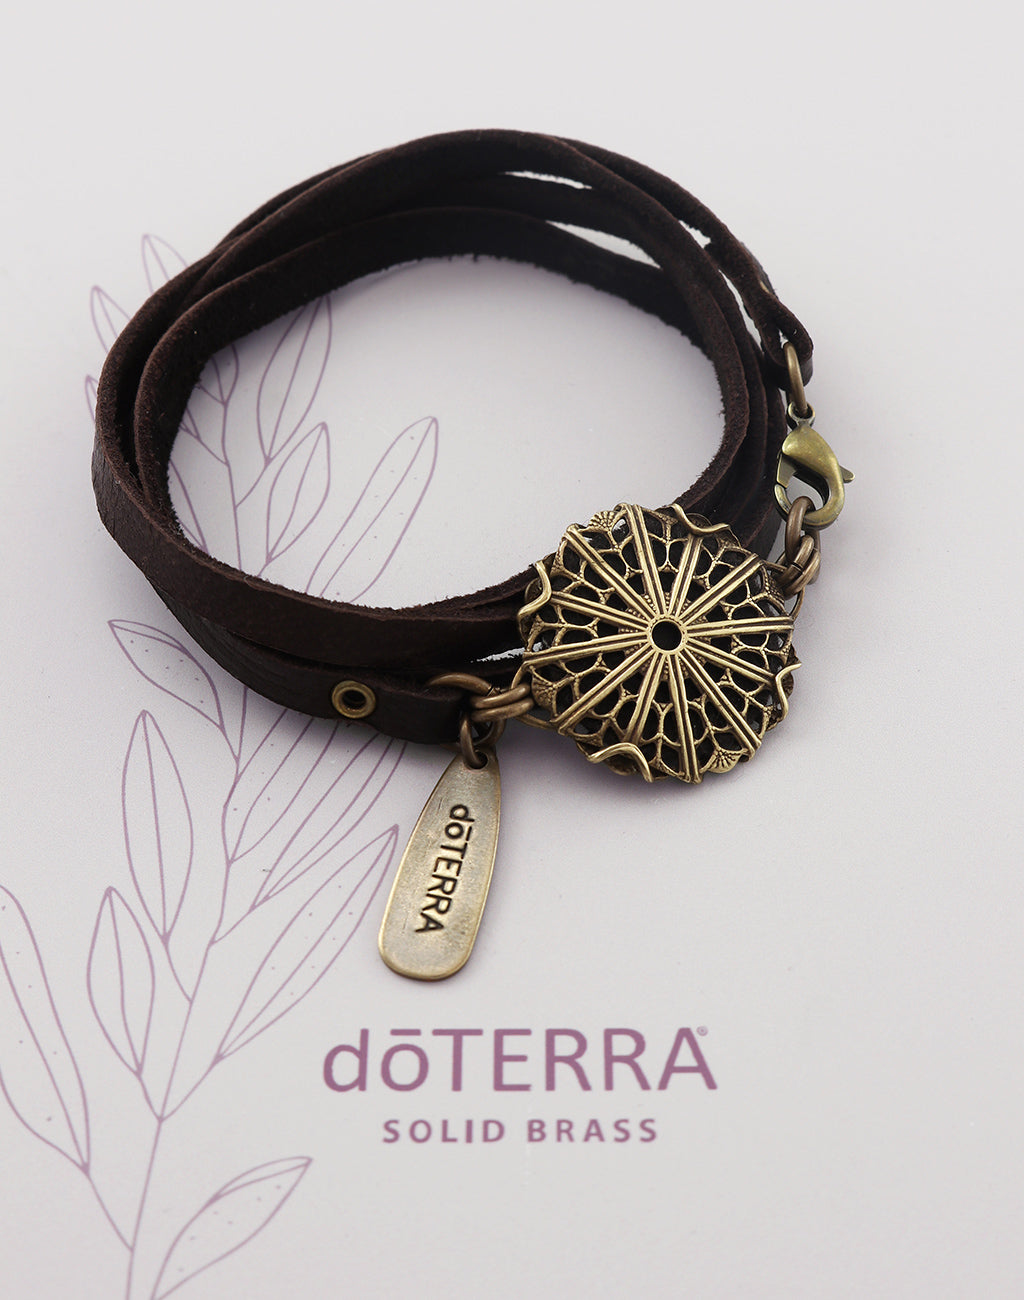 doTERRA PATHWAY Diffuser Leather Wrap Bracelet